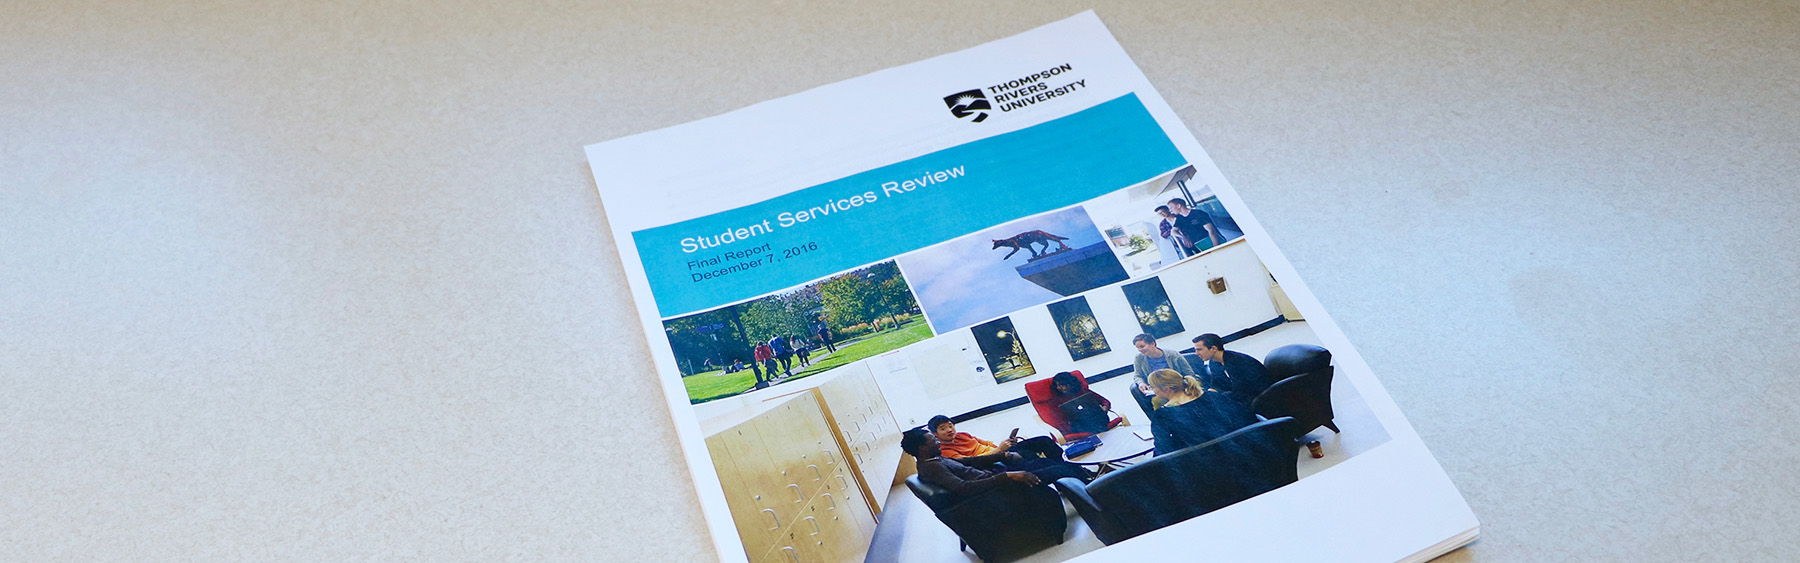 Student Services Review